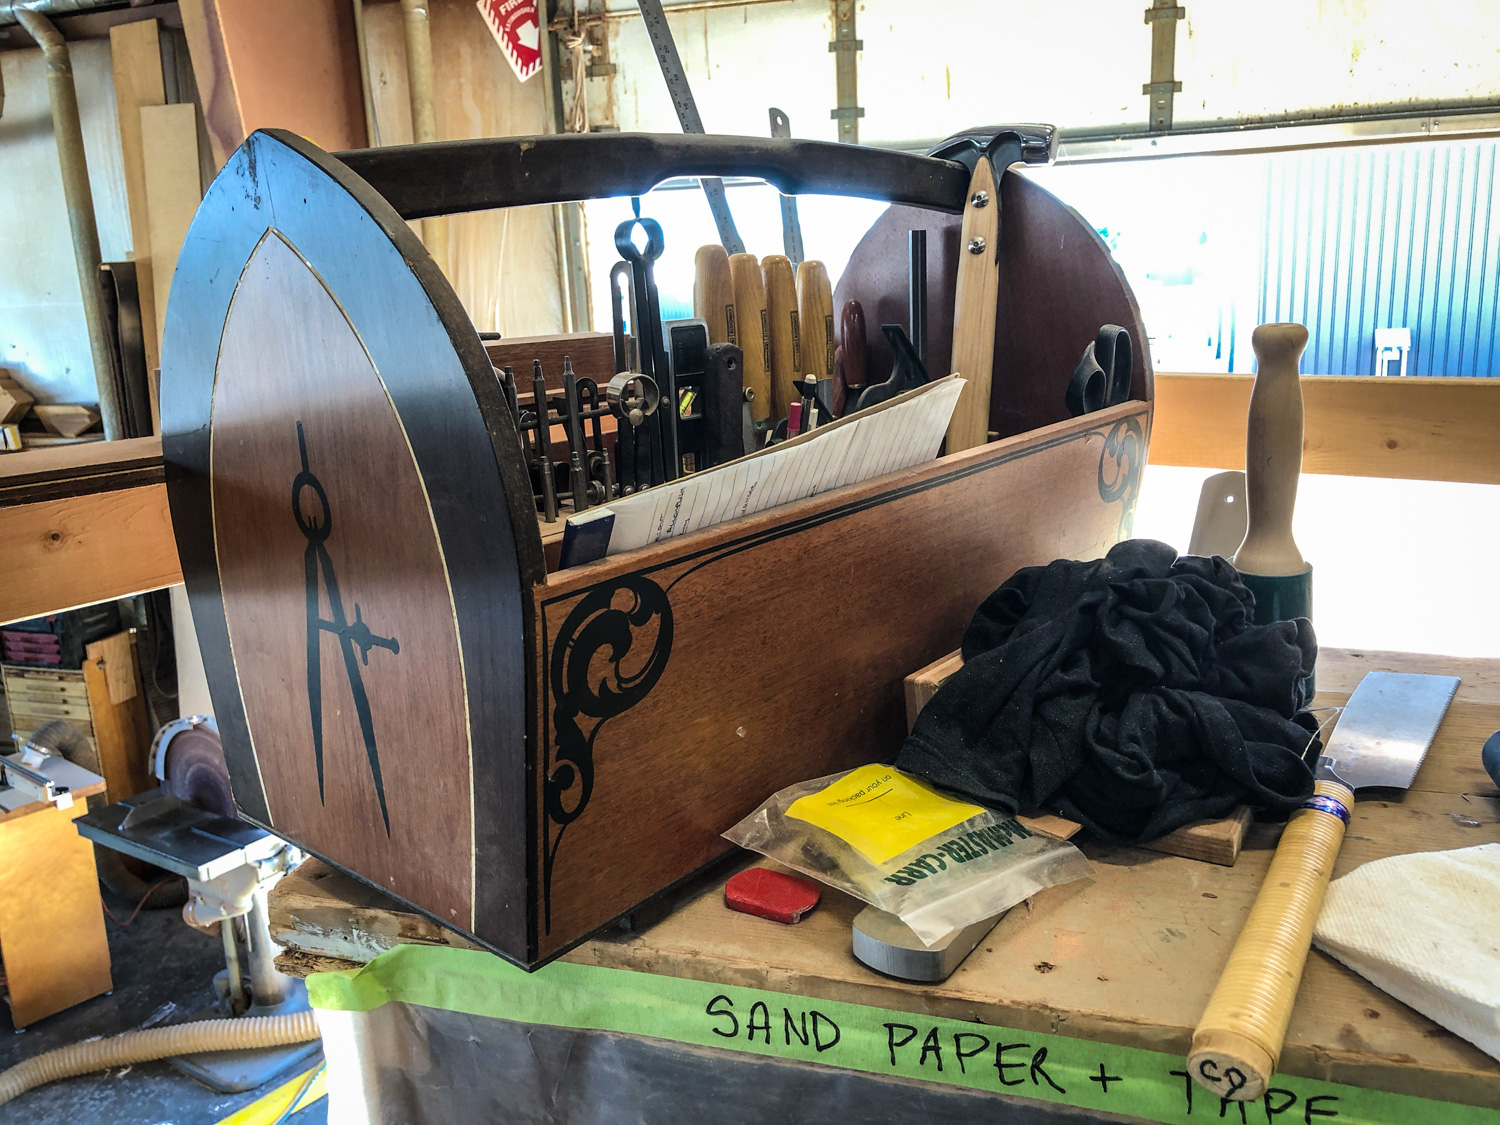 An example of a boat builder's handmade toolbox